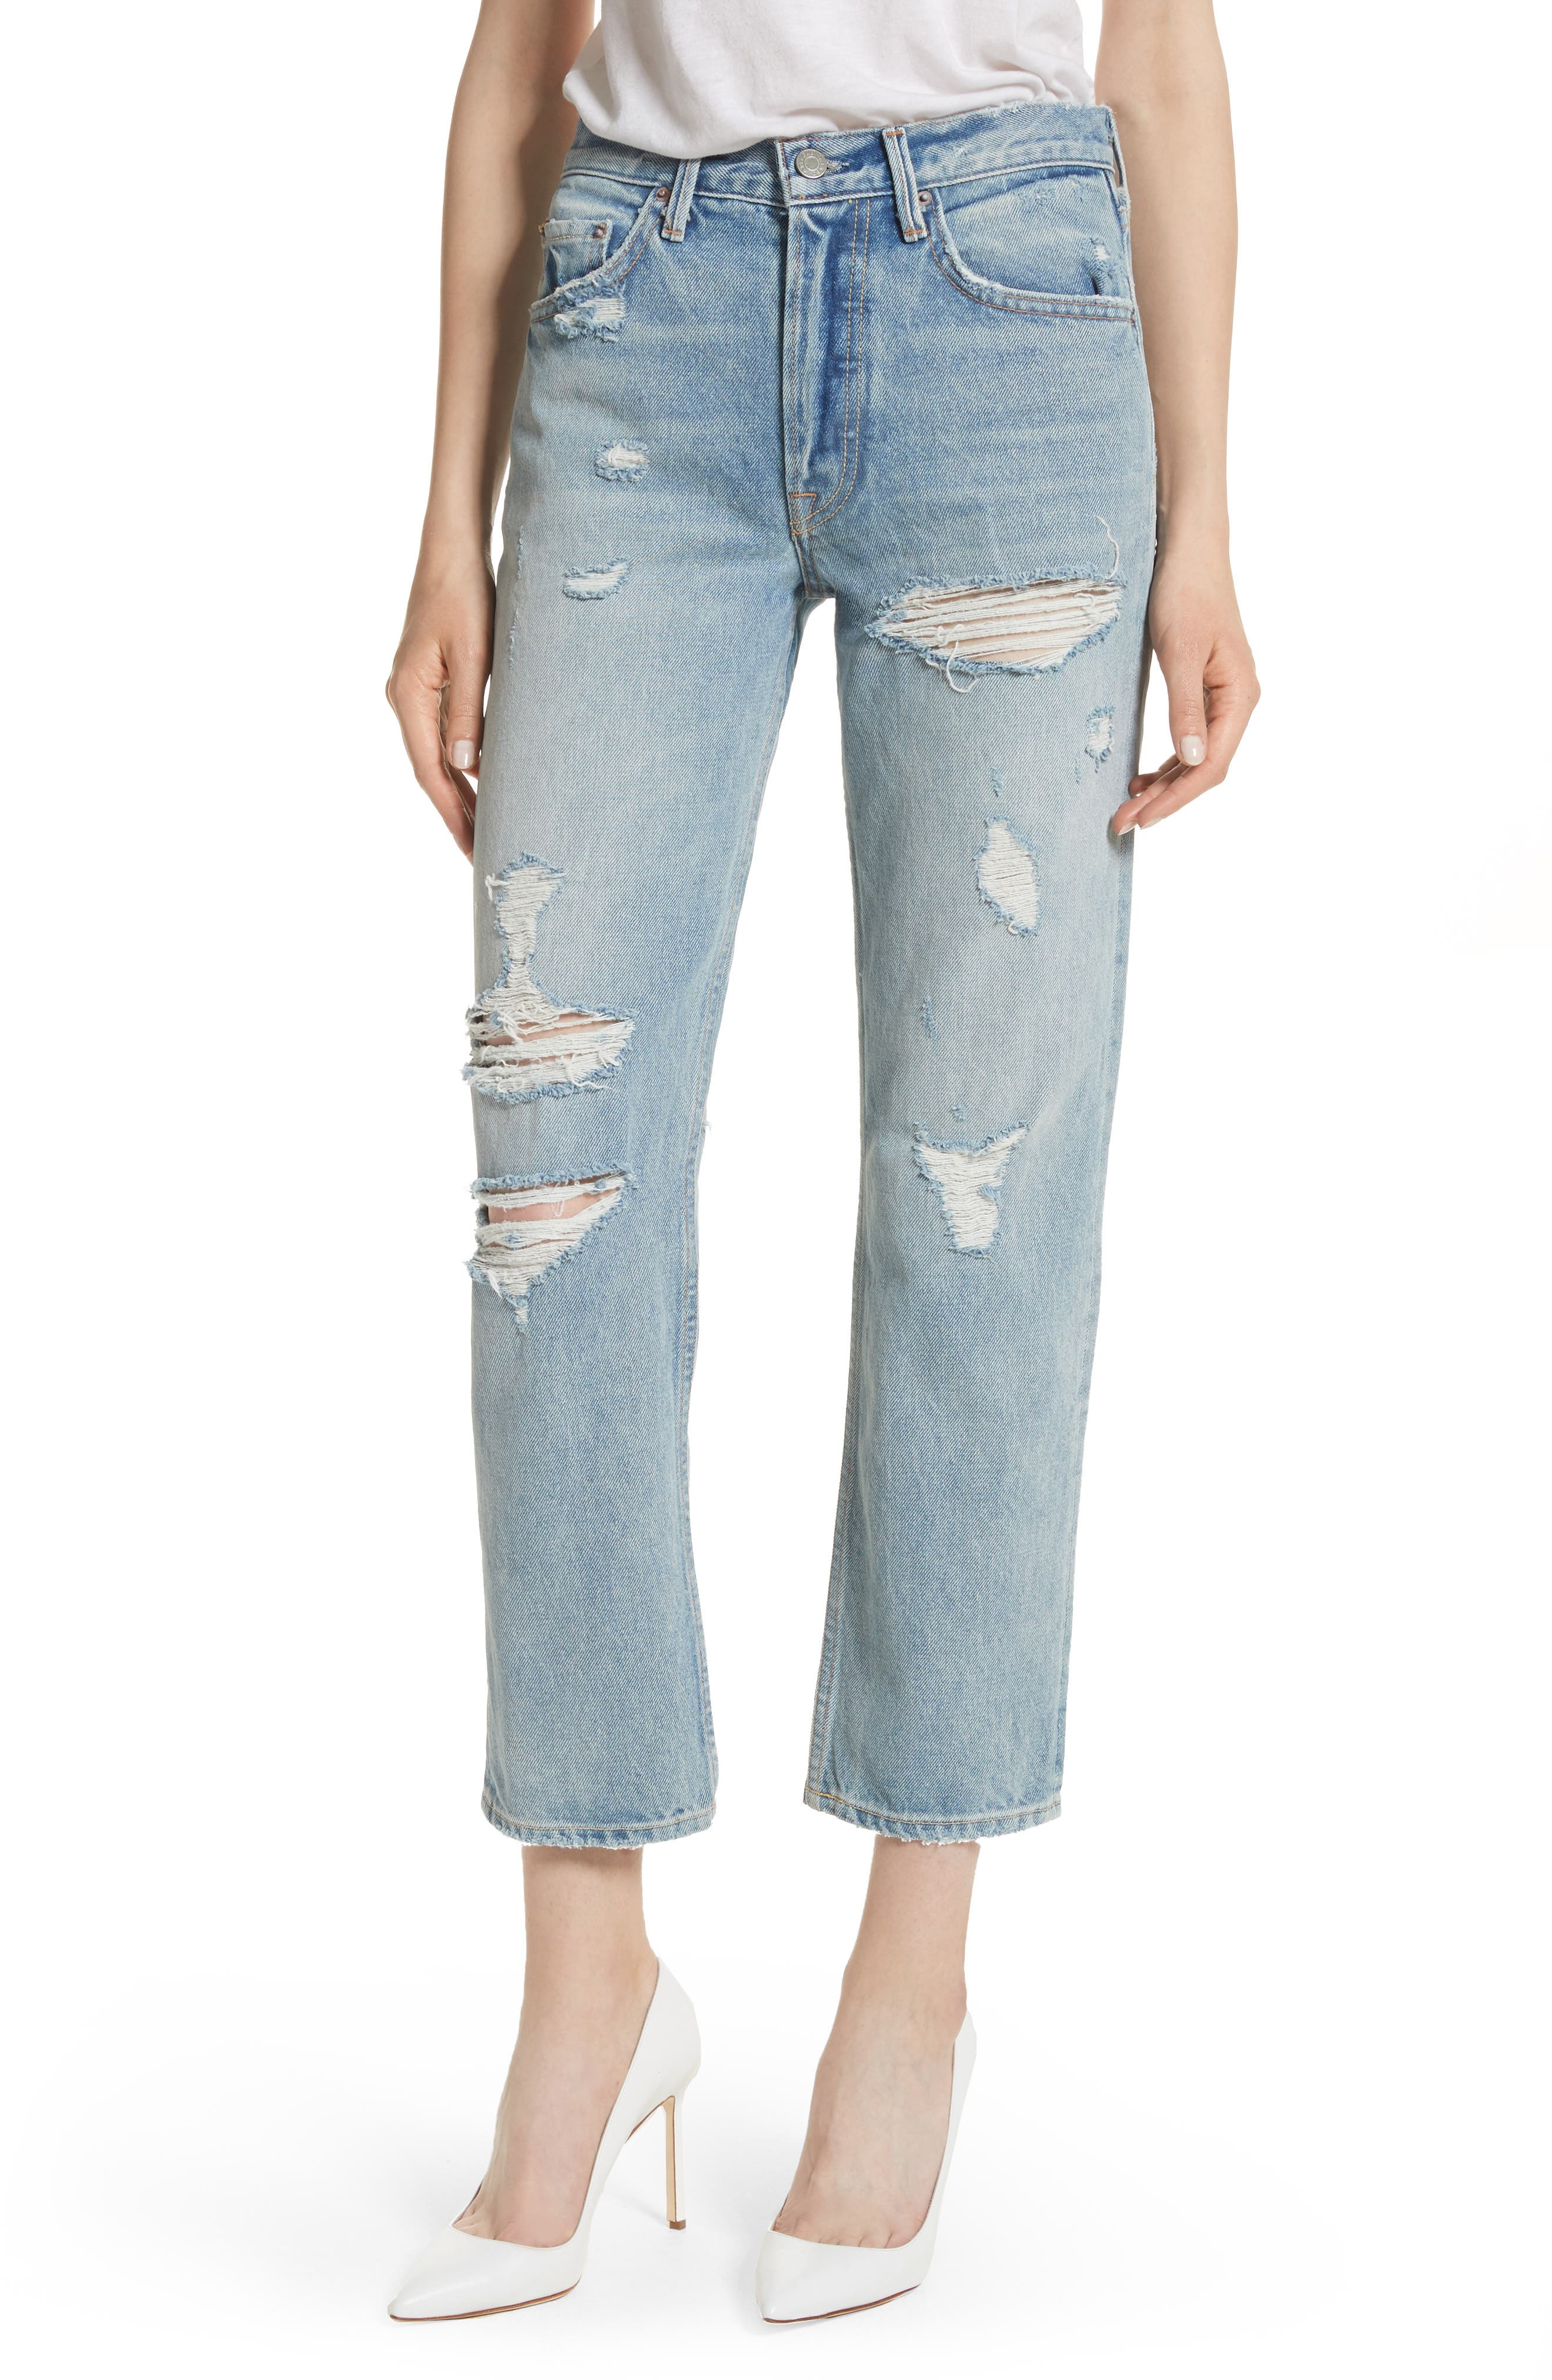 Helena Ripped Rigid High Waist Straight Jeans,                             Main thumbnail 1, color,                             491